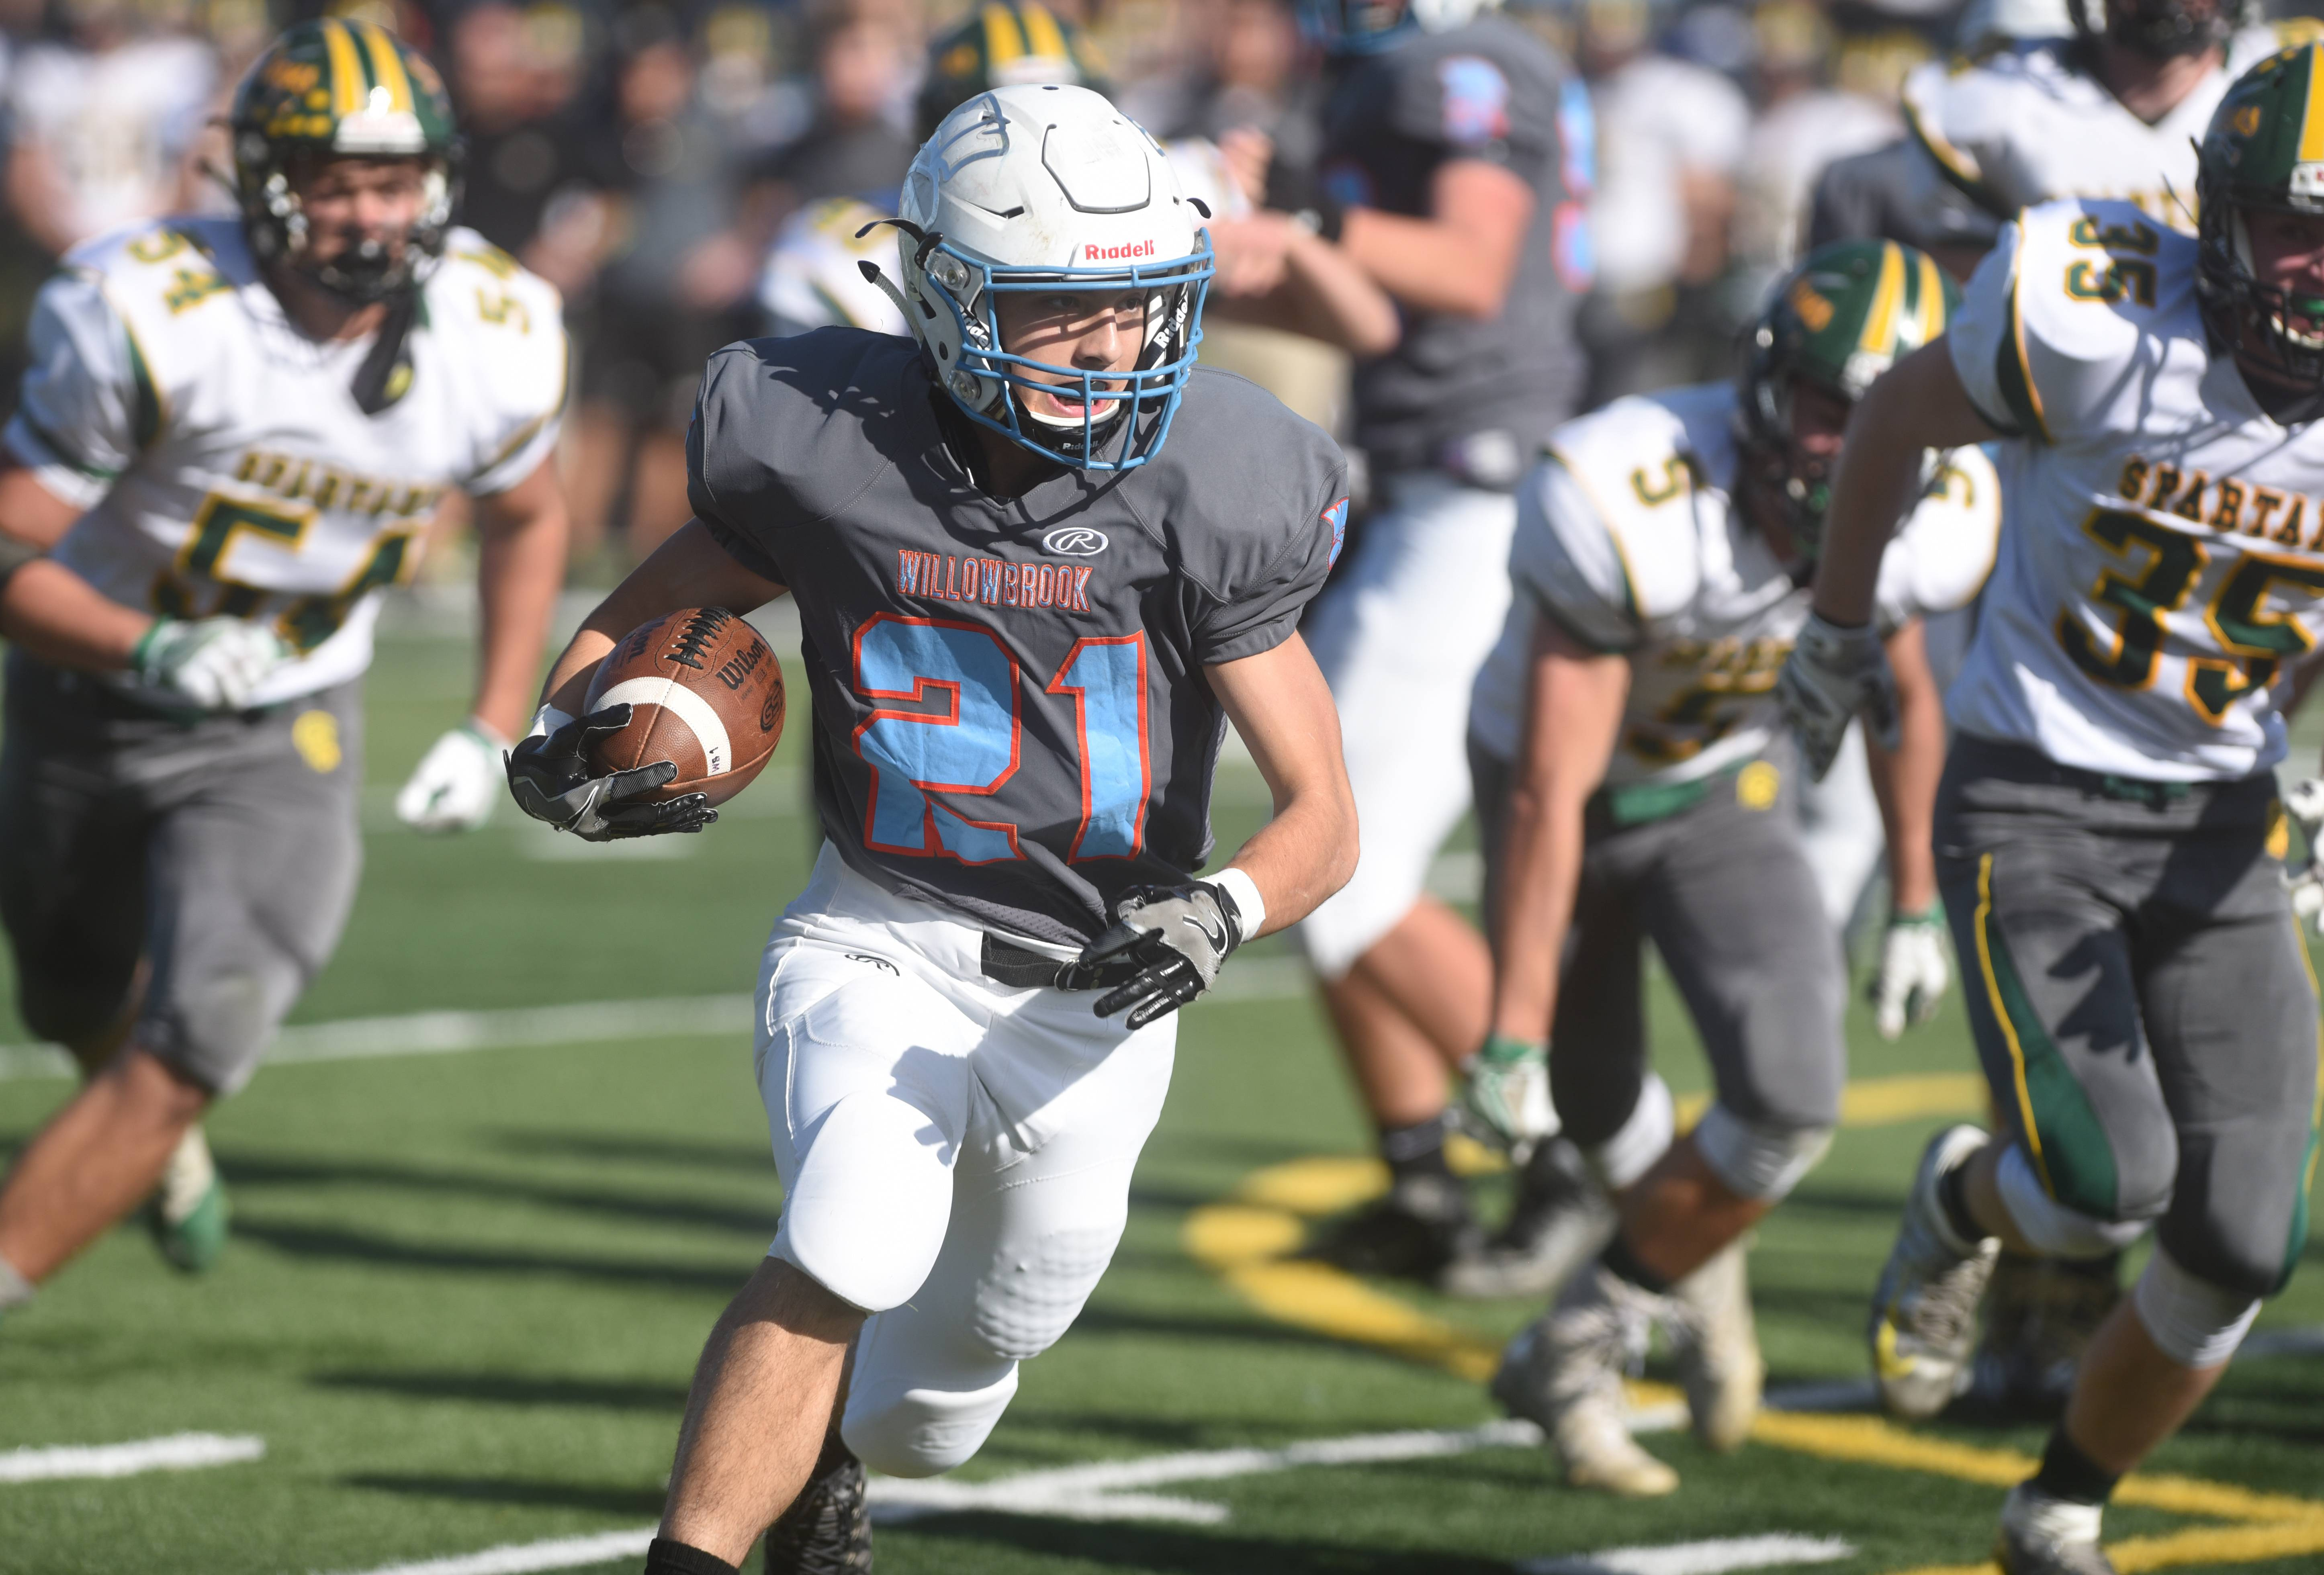 Willowbrook's Chris Diaz (21) runs the ball during the Glenbrook North at Willowbrook football, second-round playoff game Saturday.